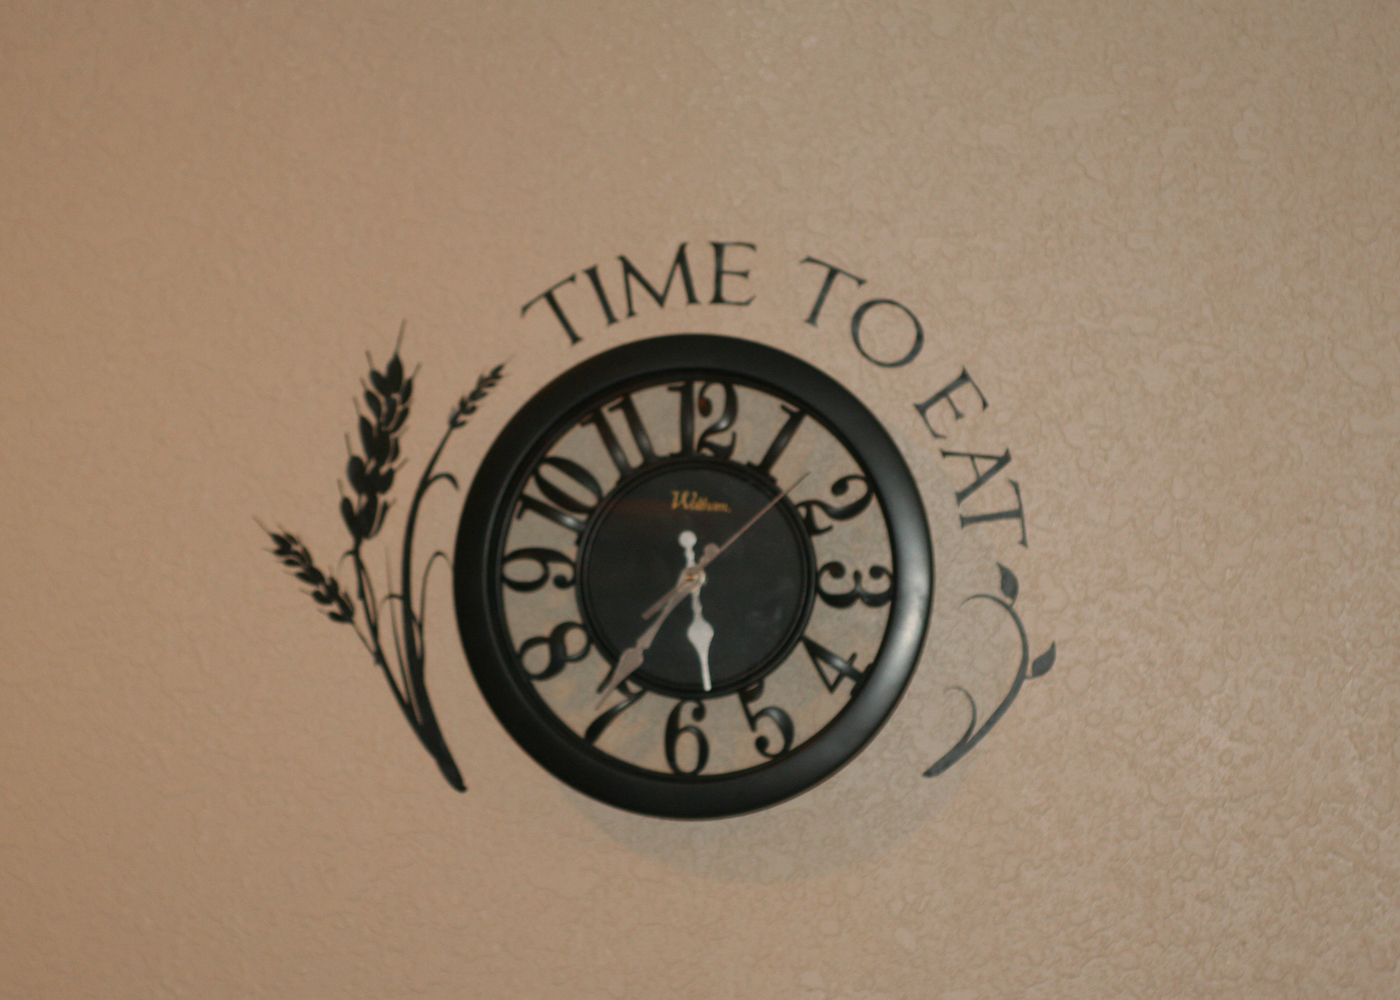 clock-wall-art-decal-time-to-eat-custom.jpg